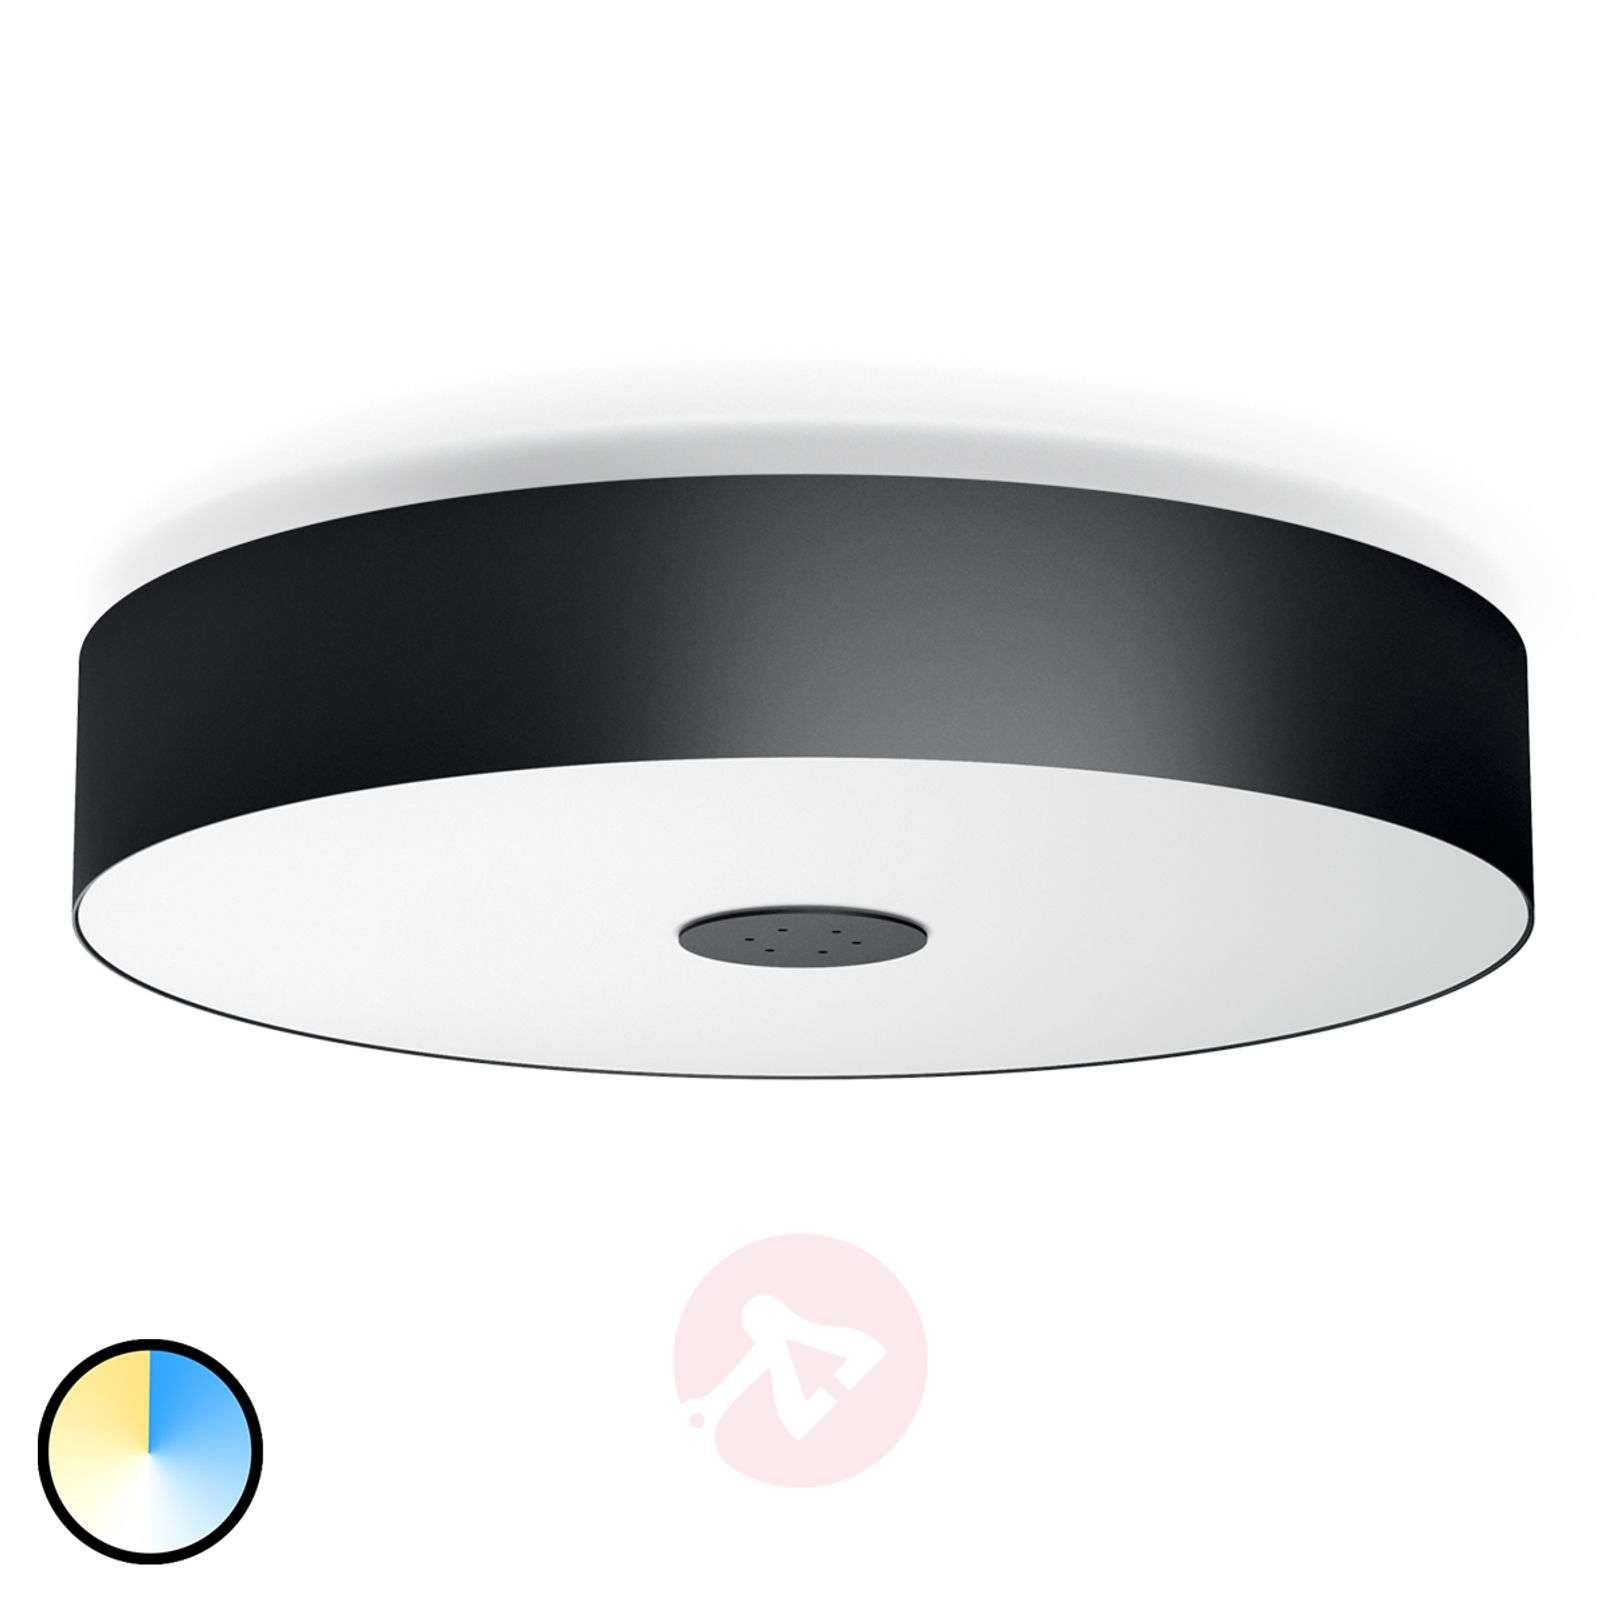 Plafoniere Philips Hue : Acquista plafoniera a led fair philips hue lampade